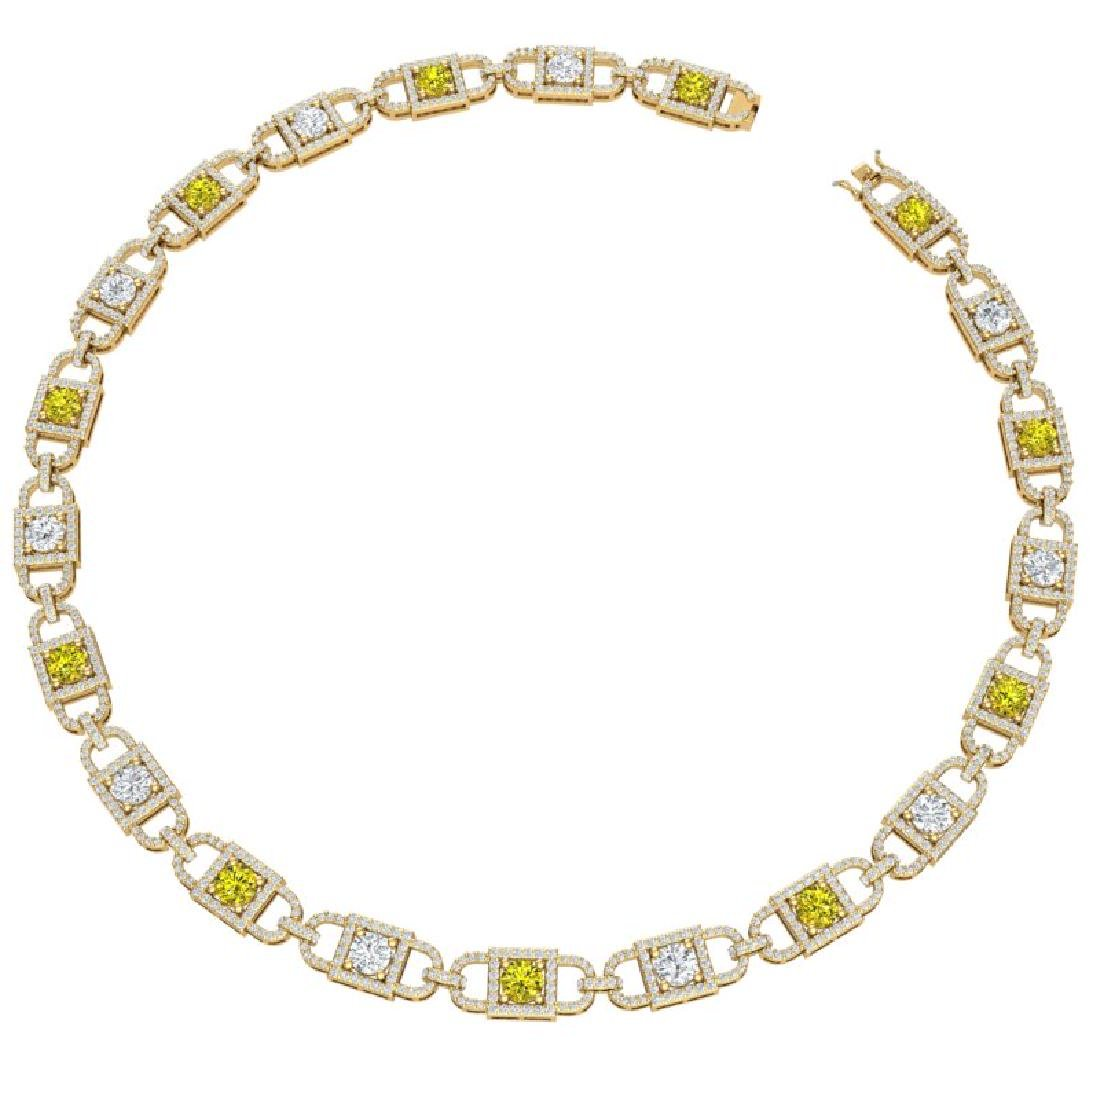 20 CTW SI/I Fancy Yellow And White Diamond Necklace 18K - 2